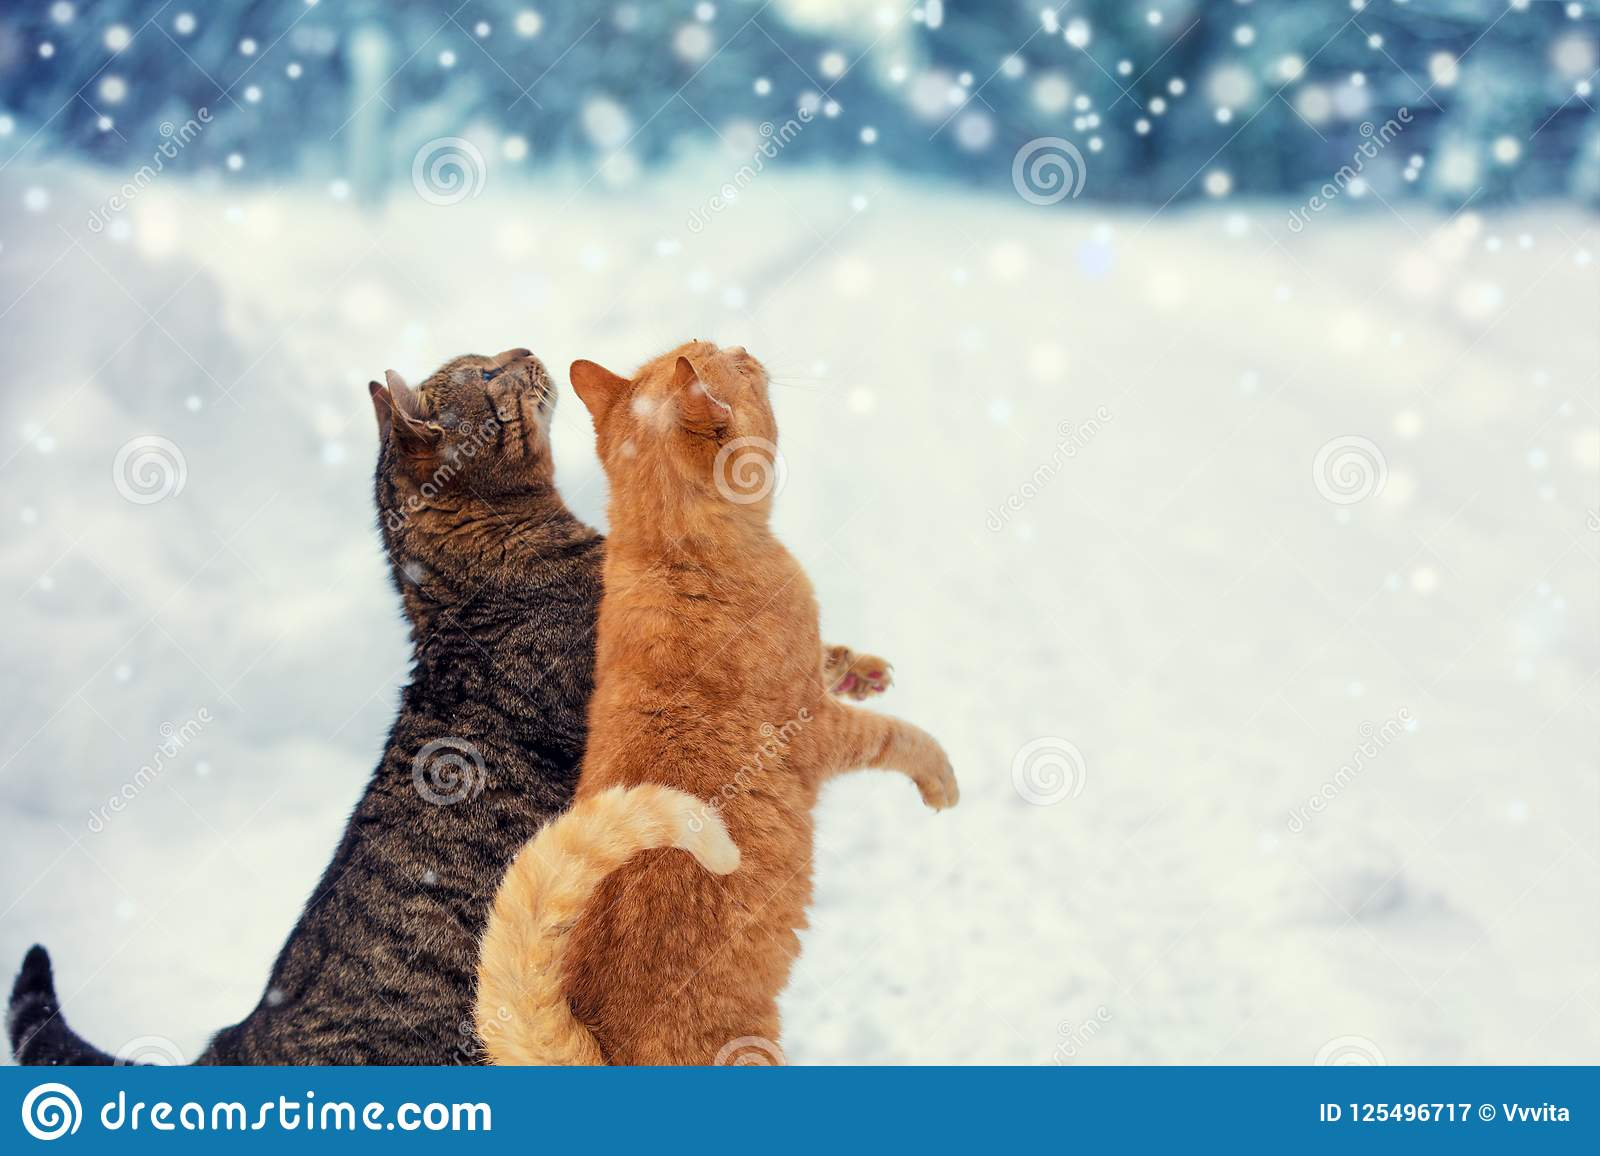 Two cats walk on snow during a snowfall